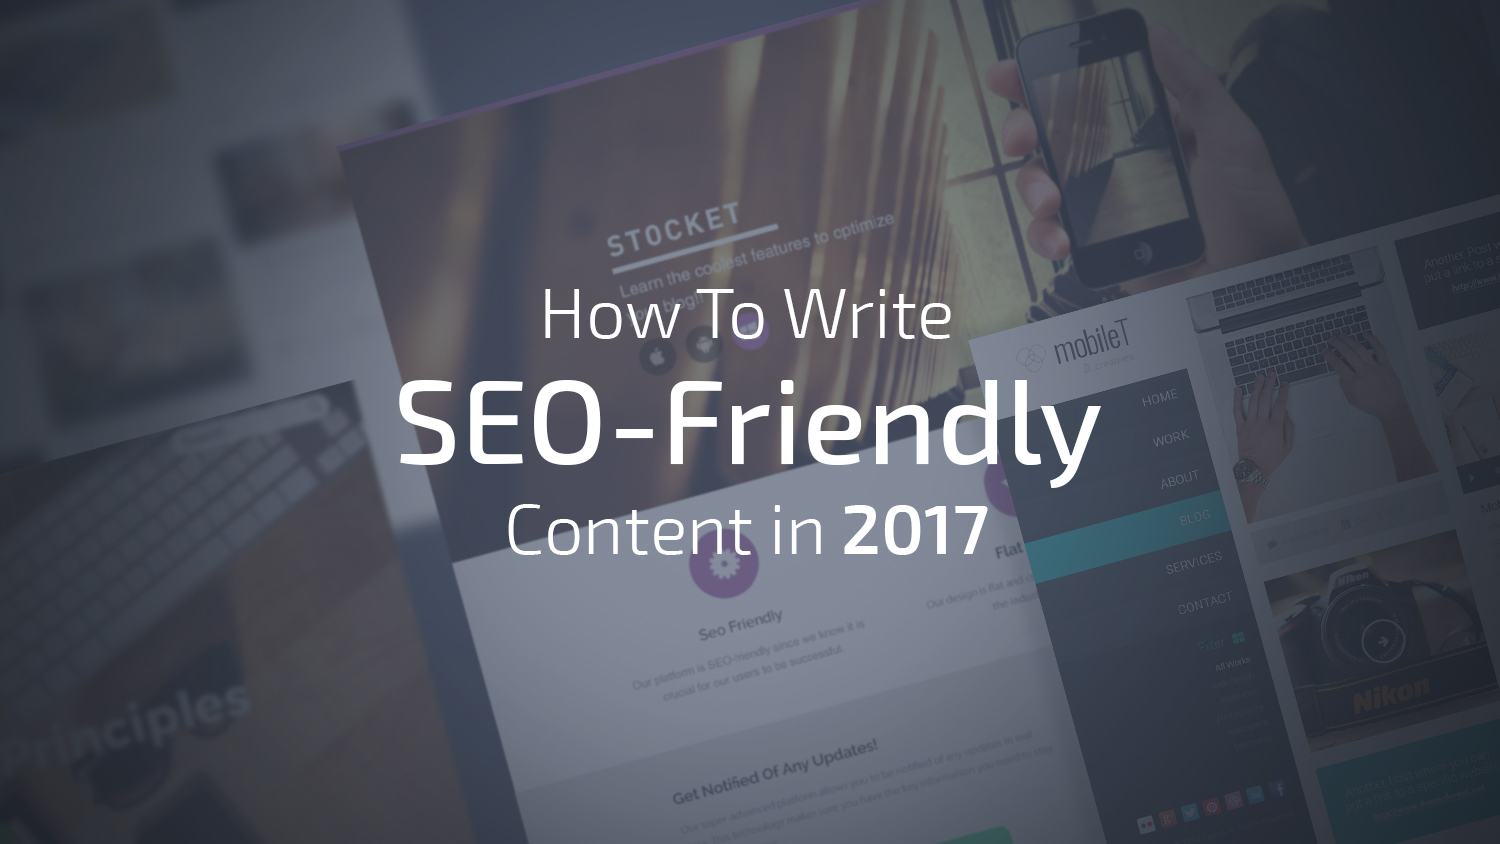 How To Write SEO-Friendly Content in 2017 (A Step by Step Guide)